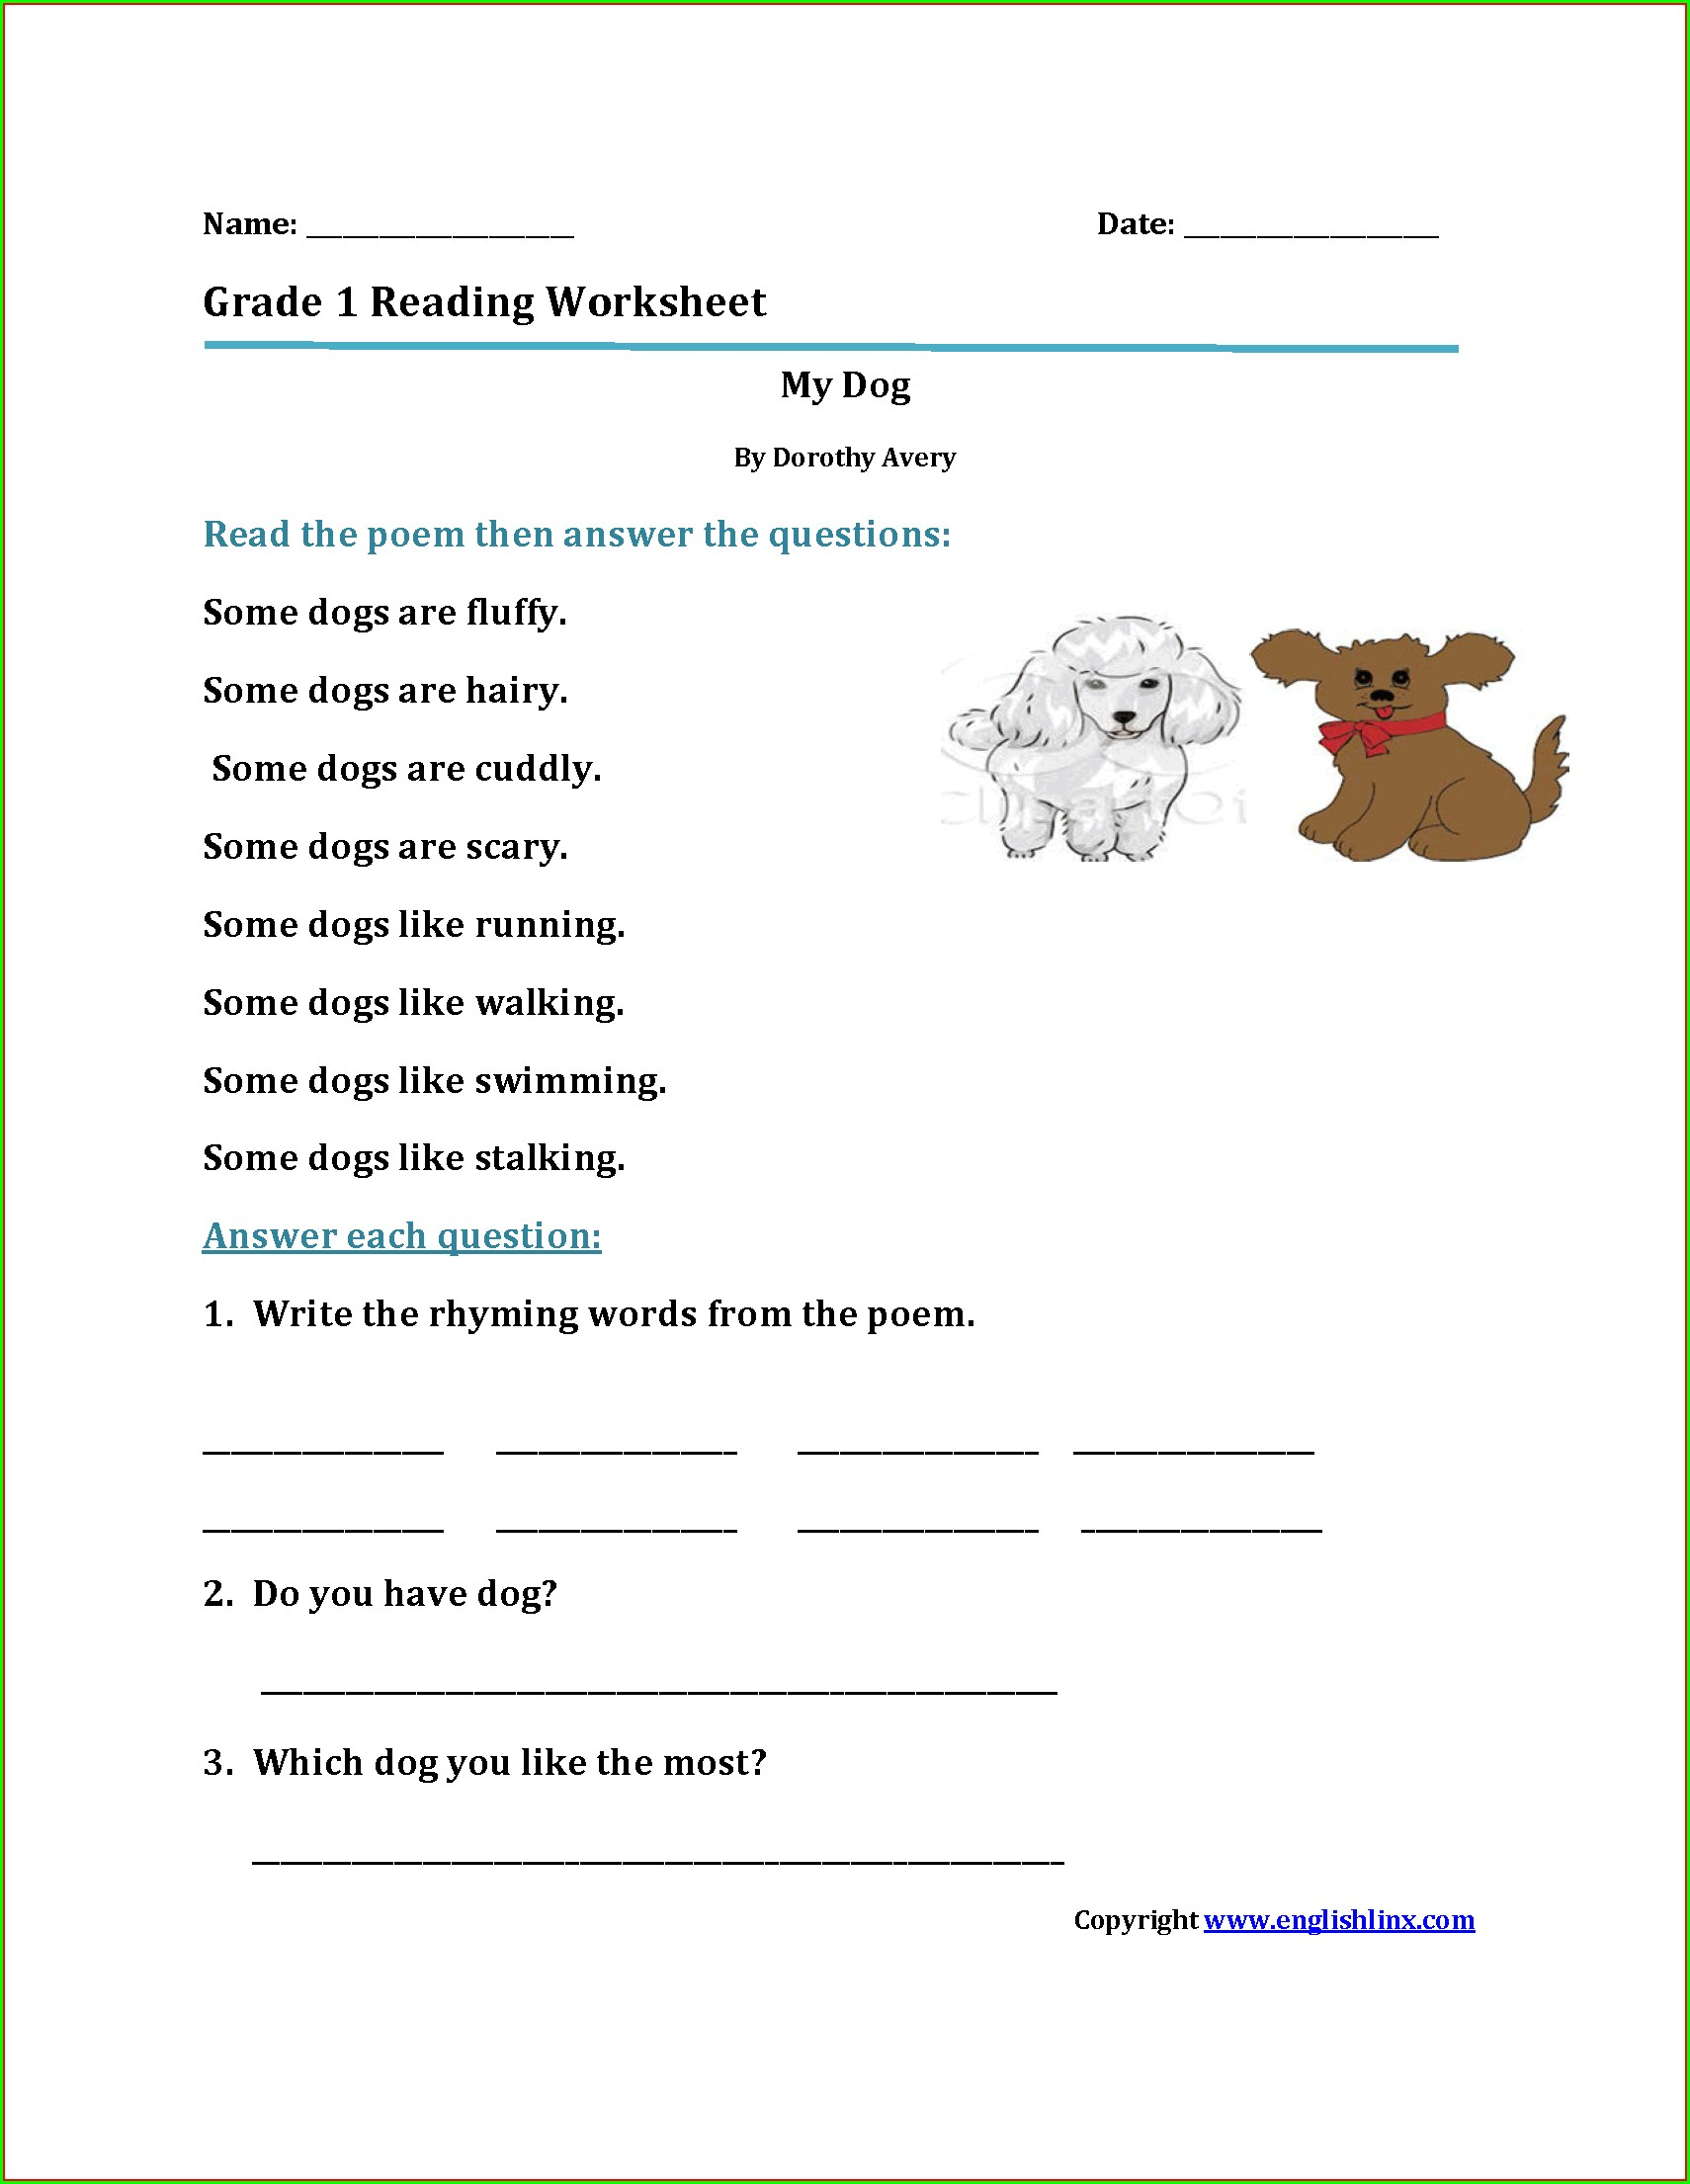 Reading Worksheet For Kinder 2